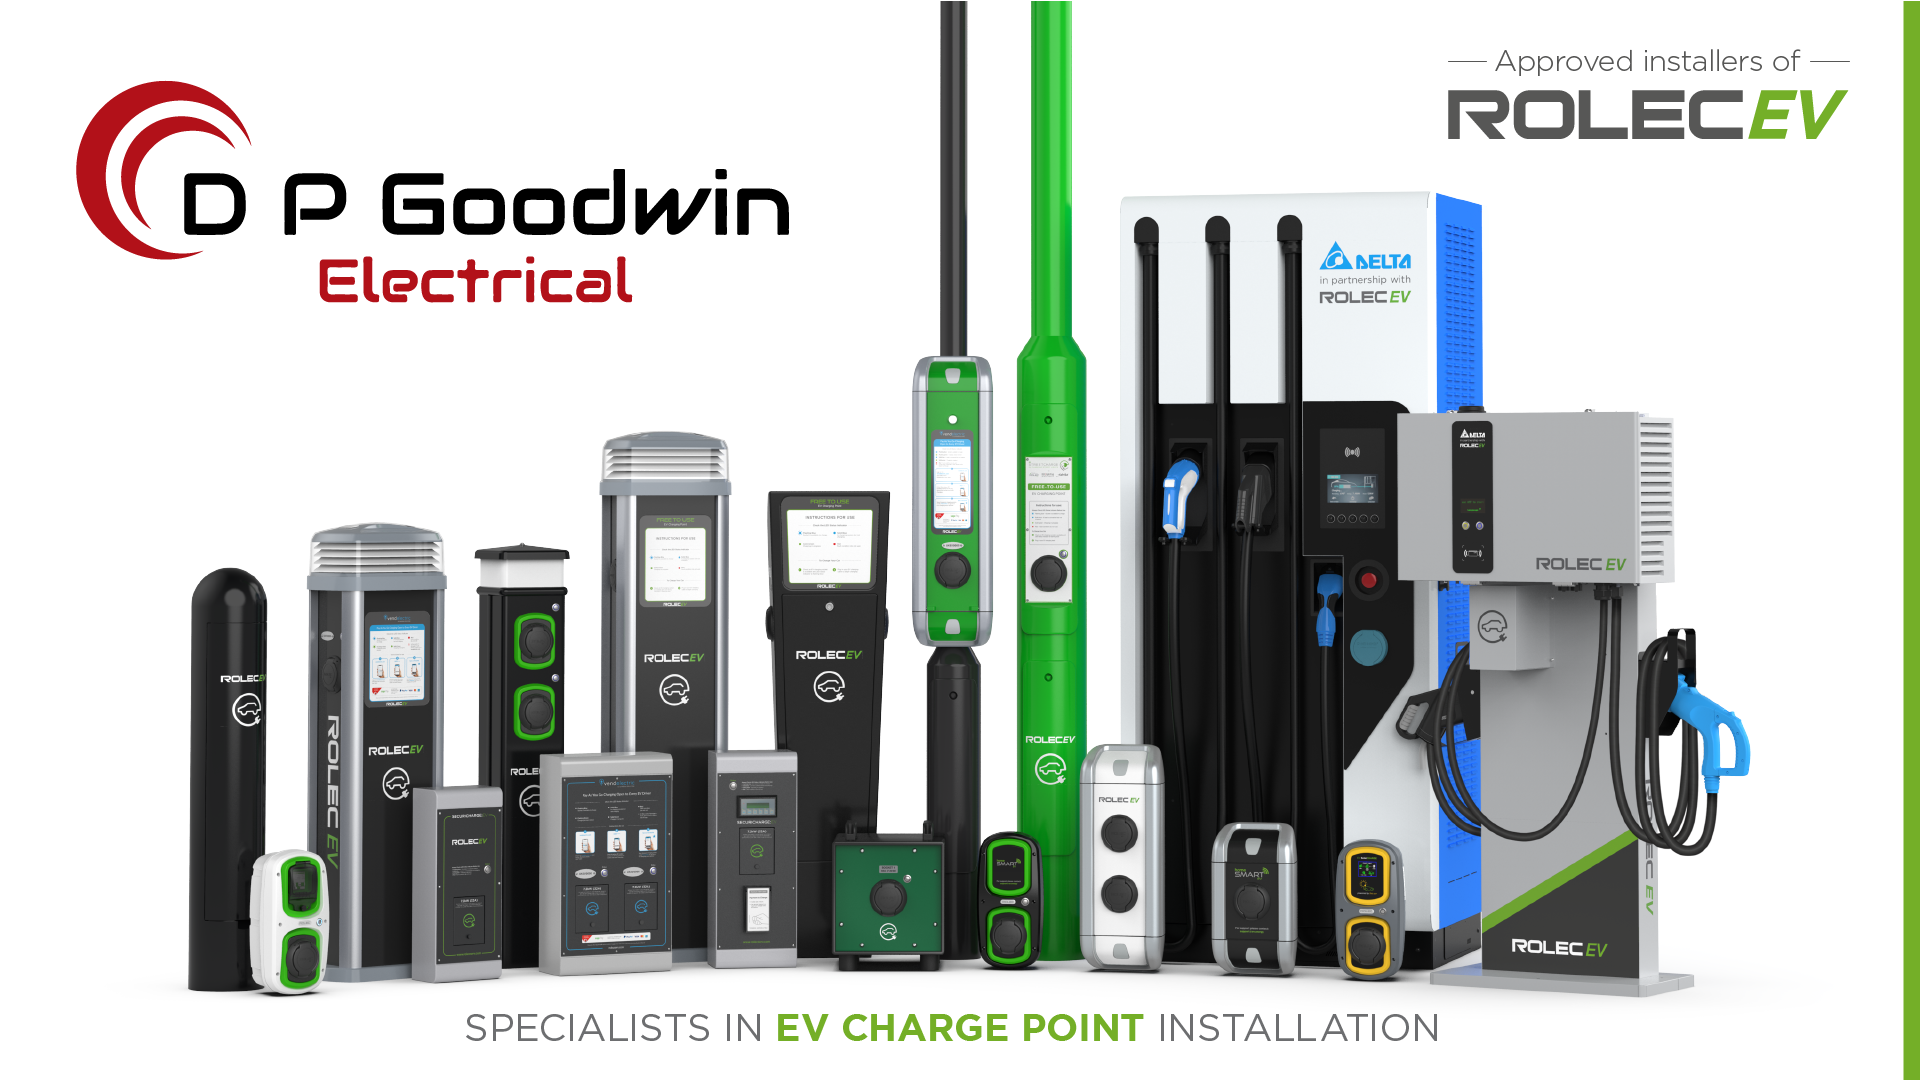 DP Goodwin Group - Electrical - Rolec Charge Point Approved Installer - Social Media Graphic.png